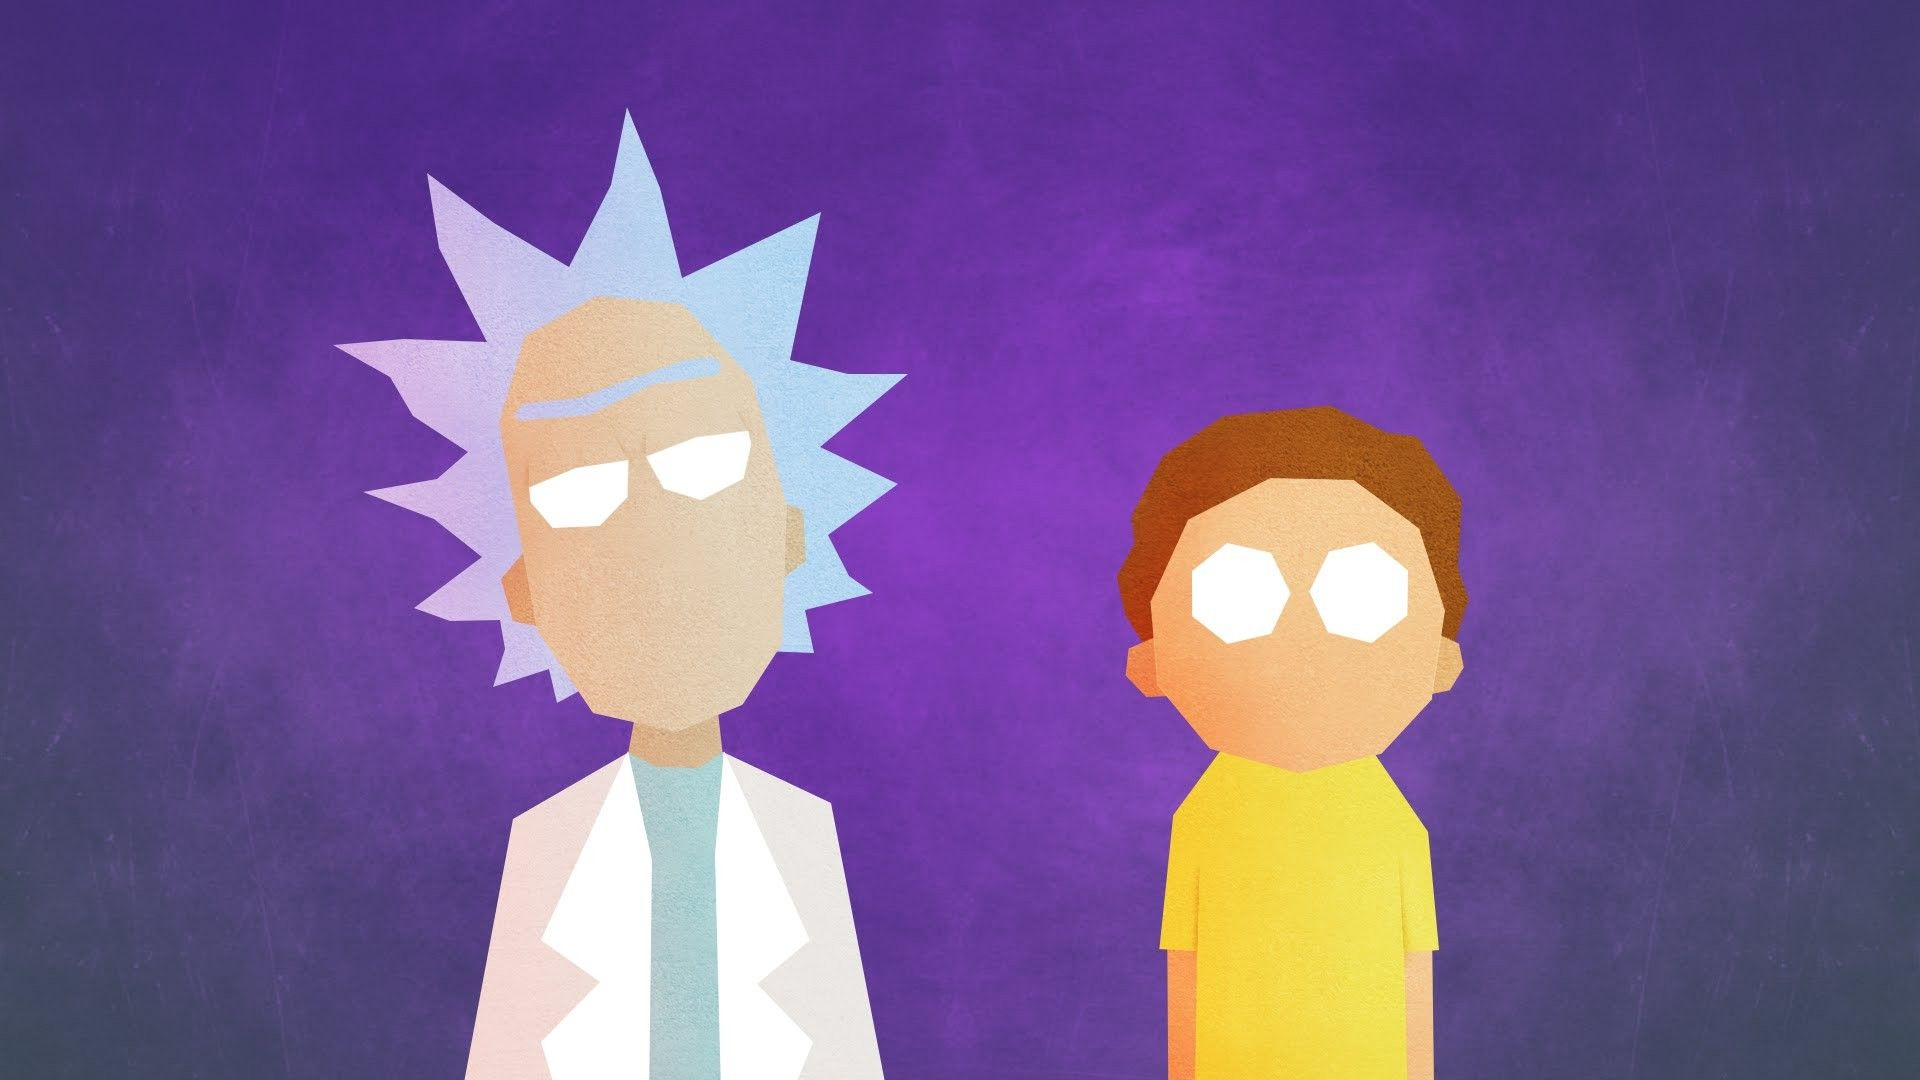 rick and morty background 1920x1080, rick and morty wallpapers hd